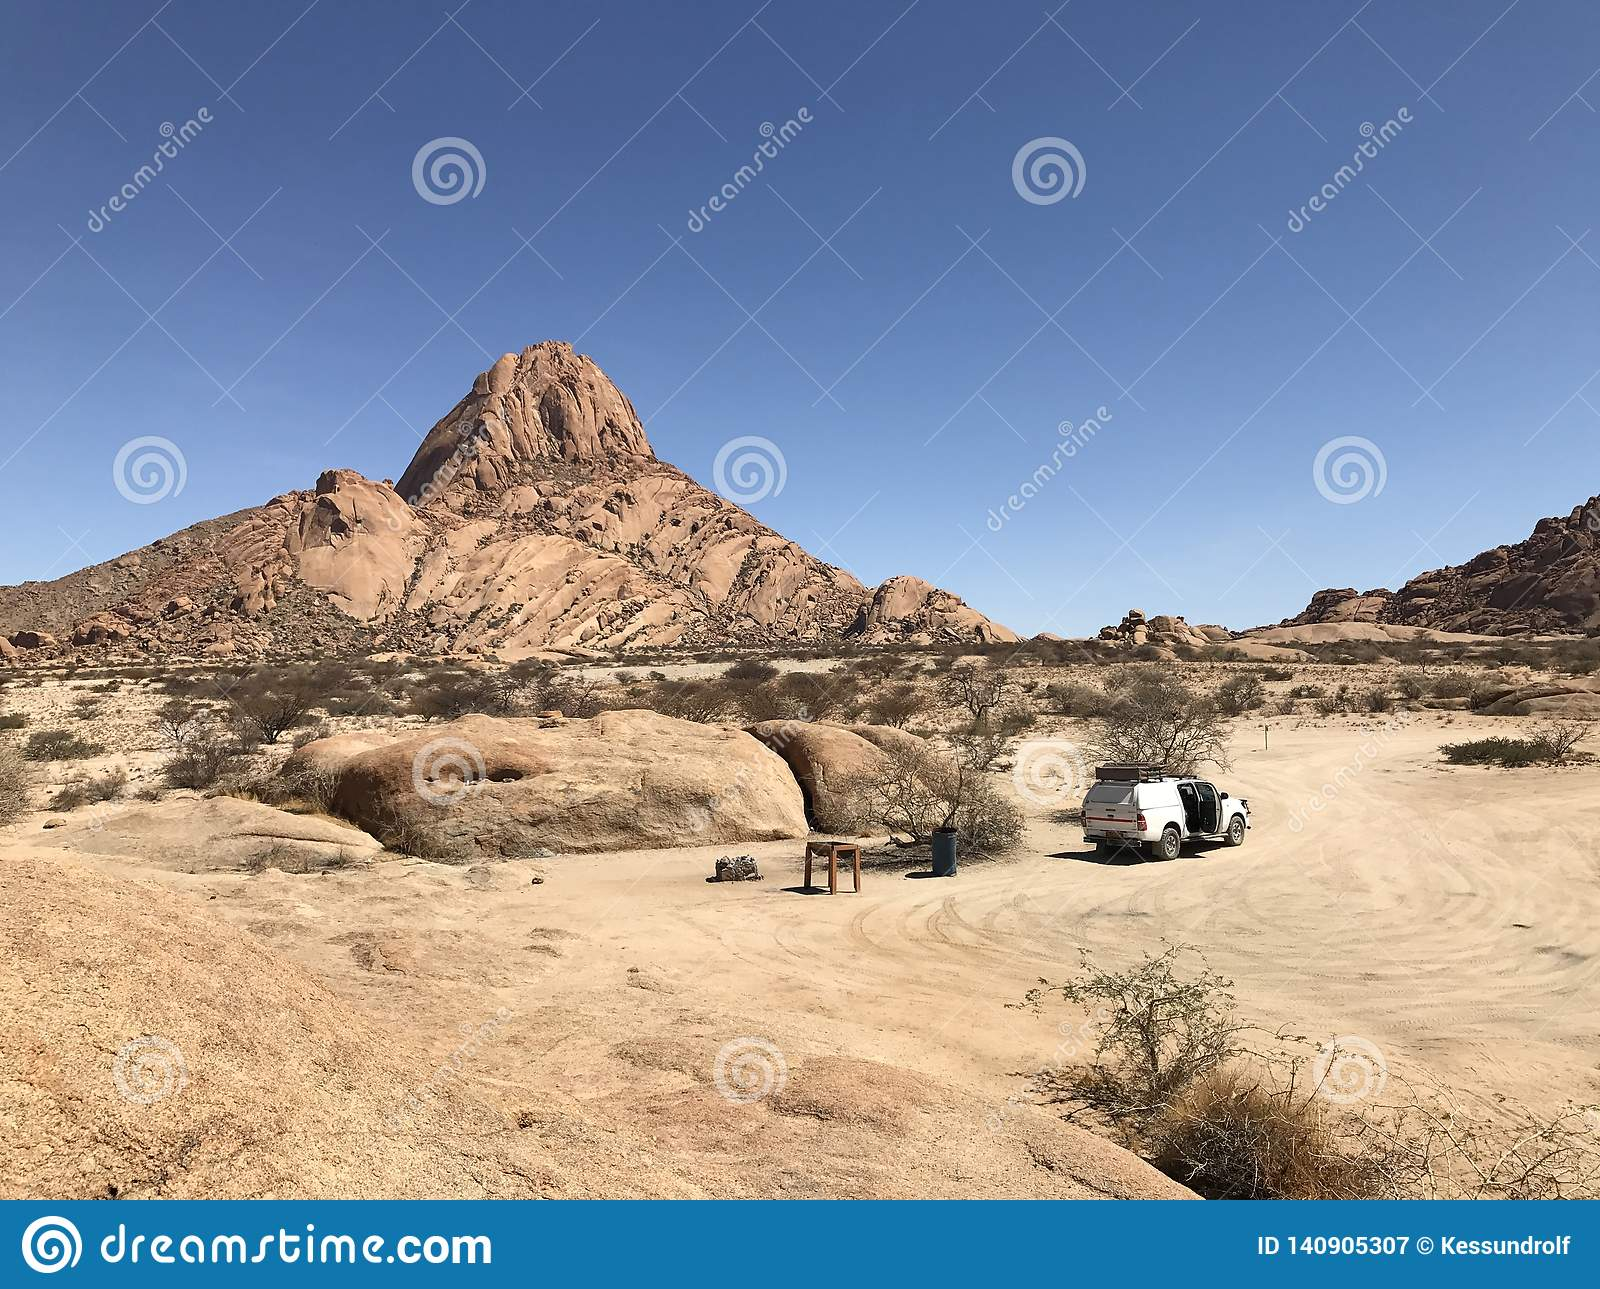 Car with roof tent on desert campsite